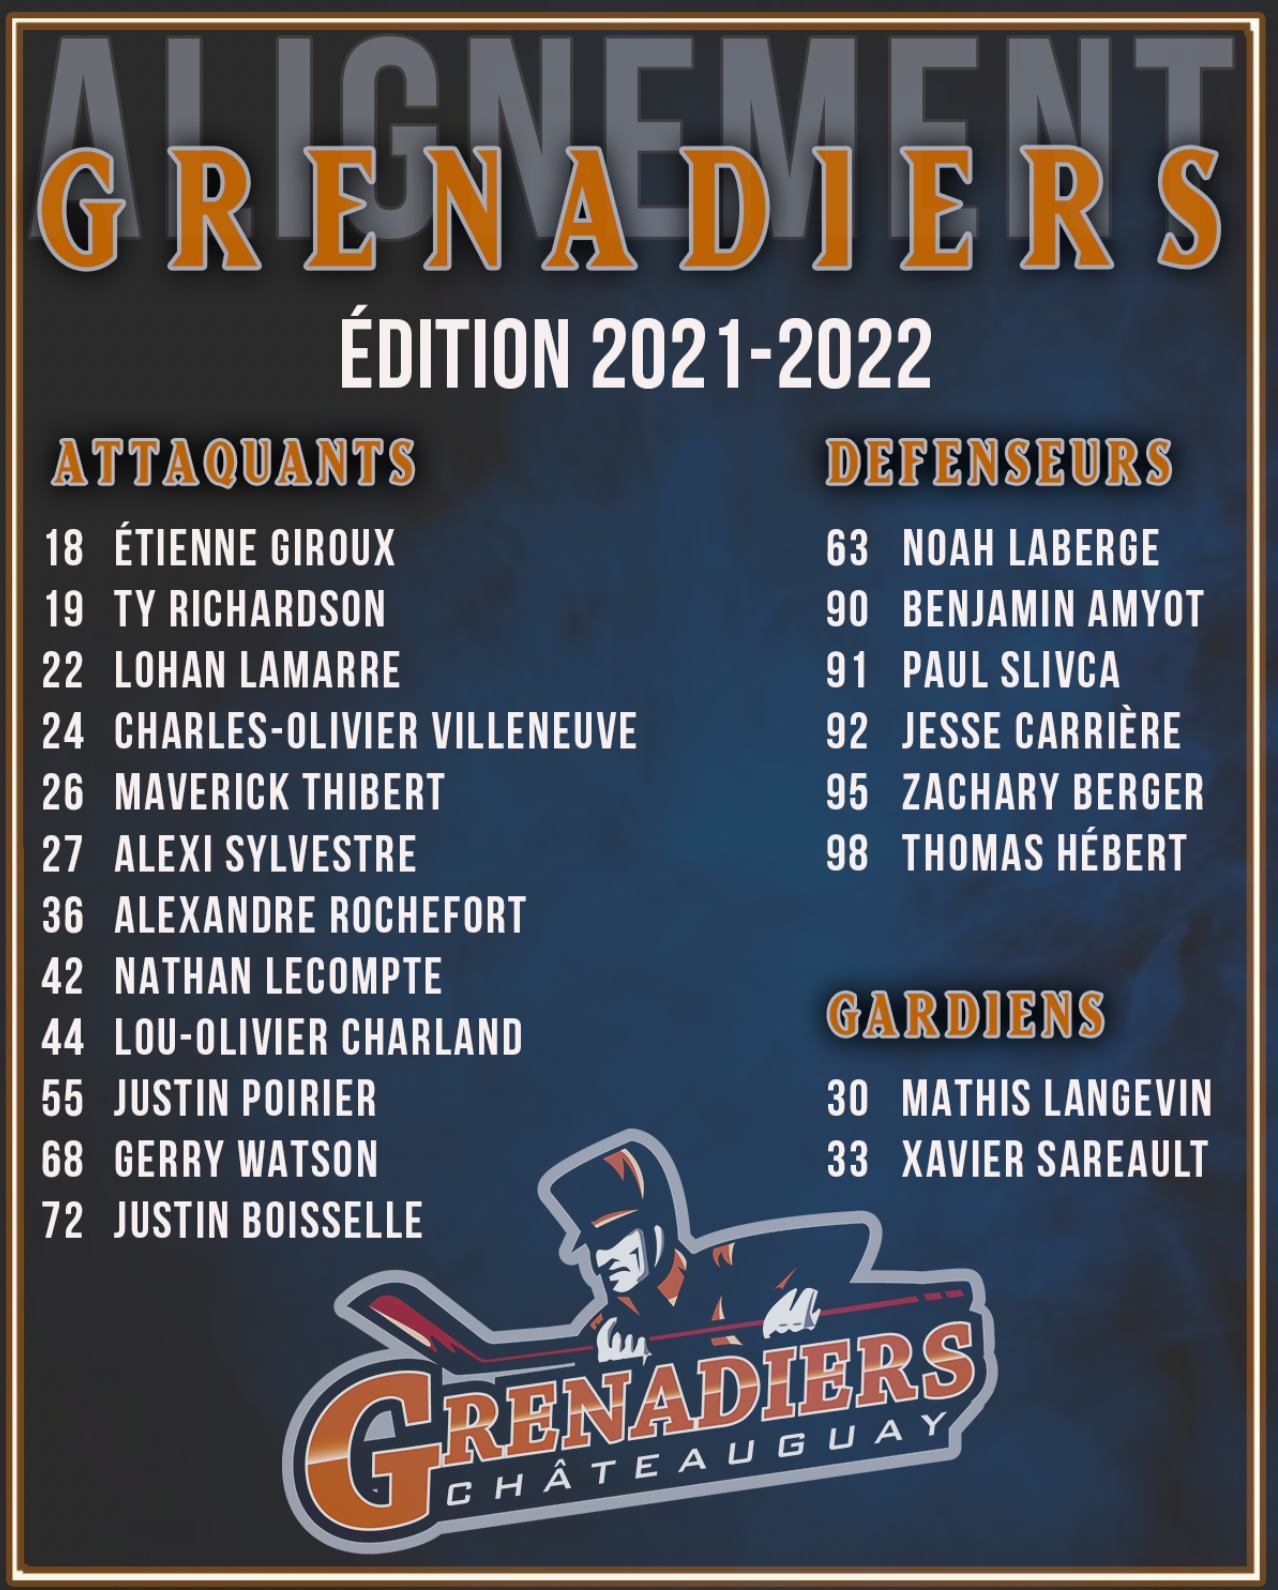 Grenadiers édition 2021-2022